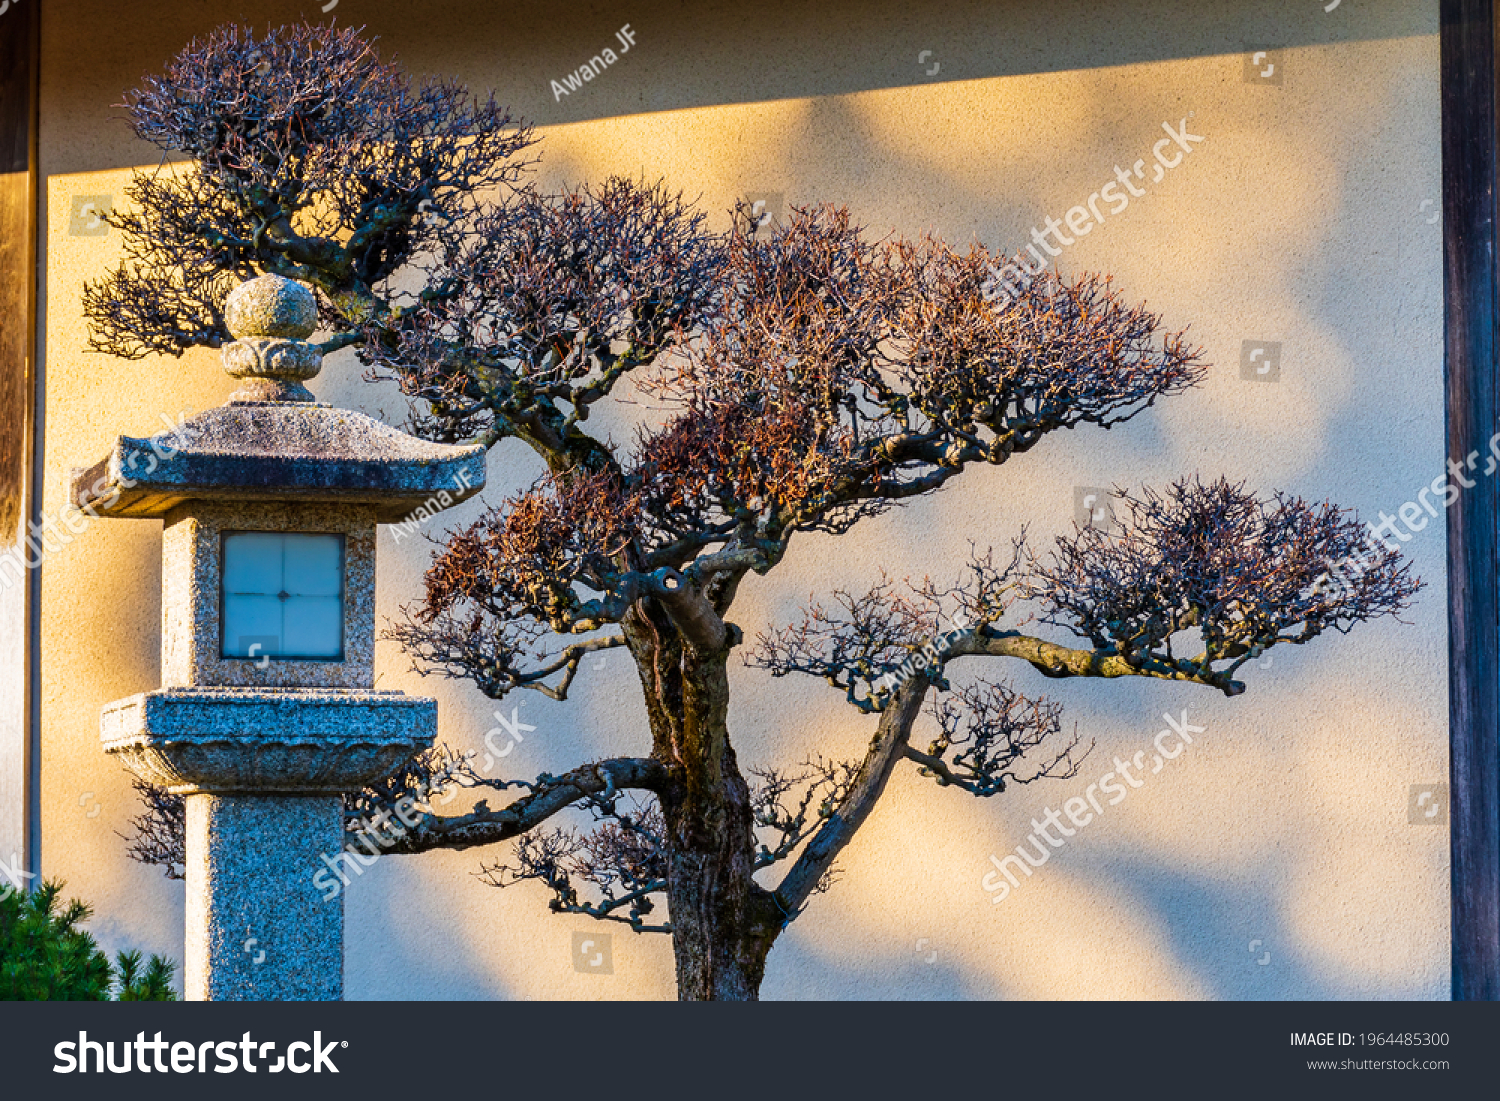 stock-photo-peaceful-view-of-a-tree-in-a